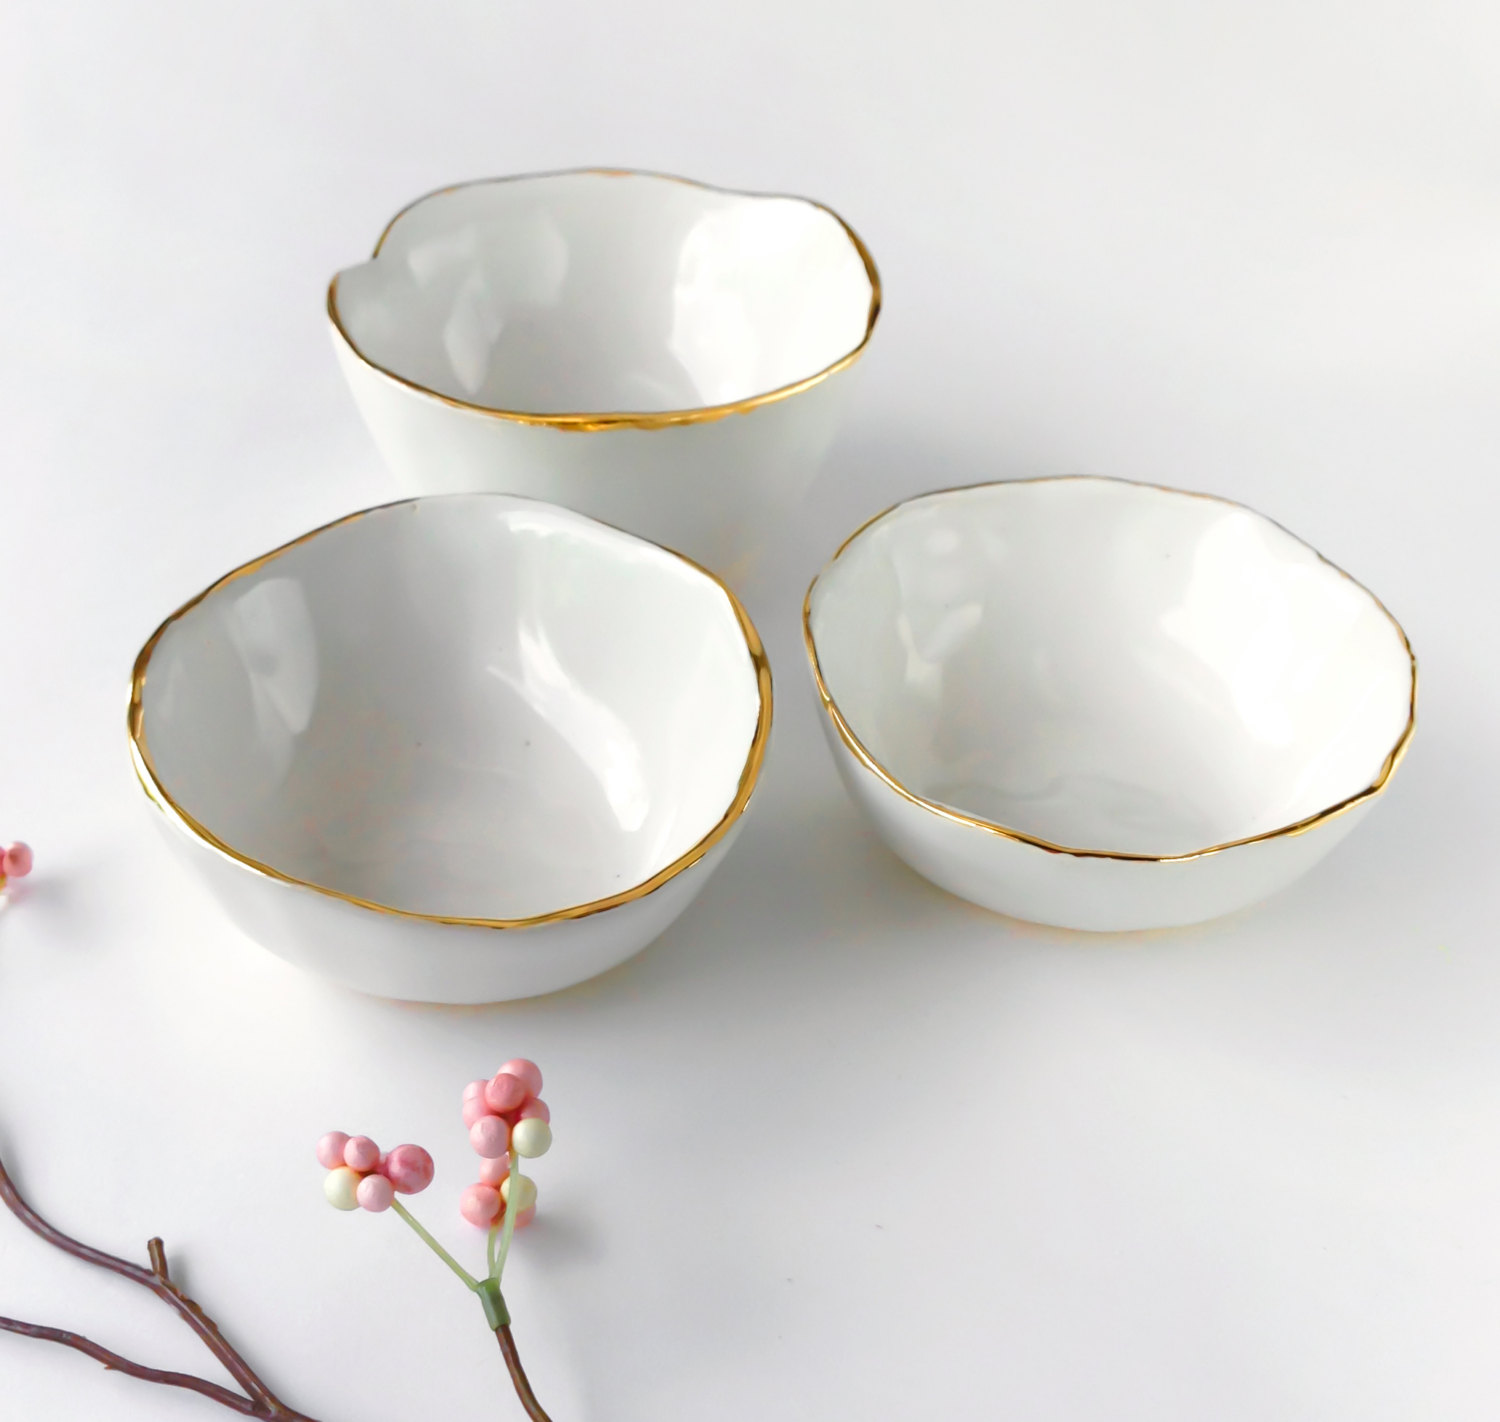 white-bowl-gold-rim1.jpg